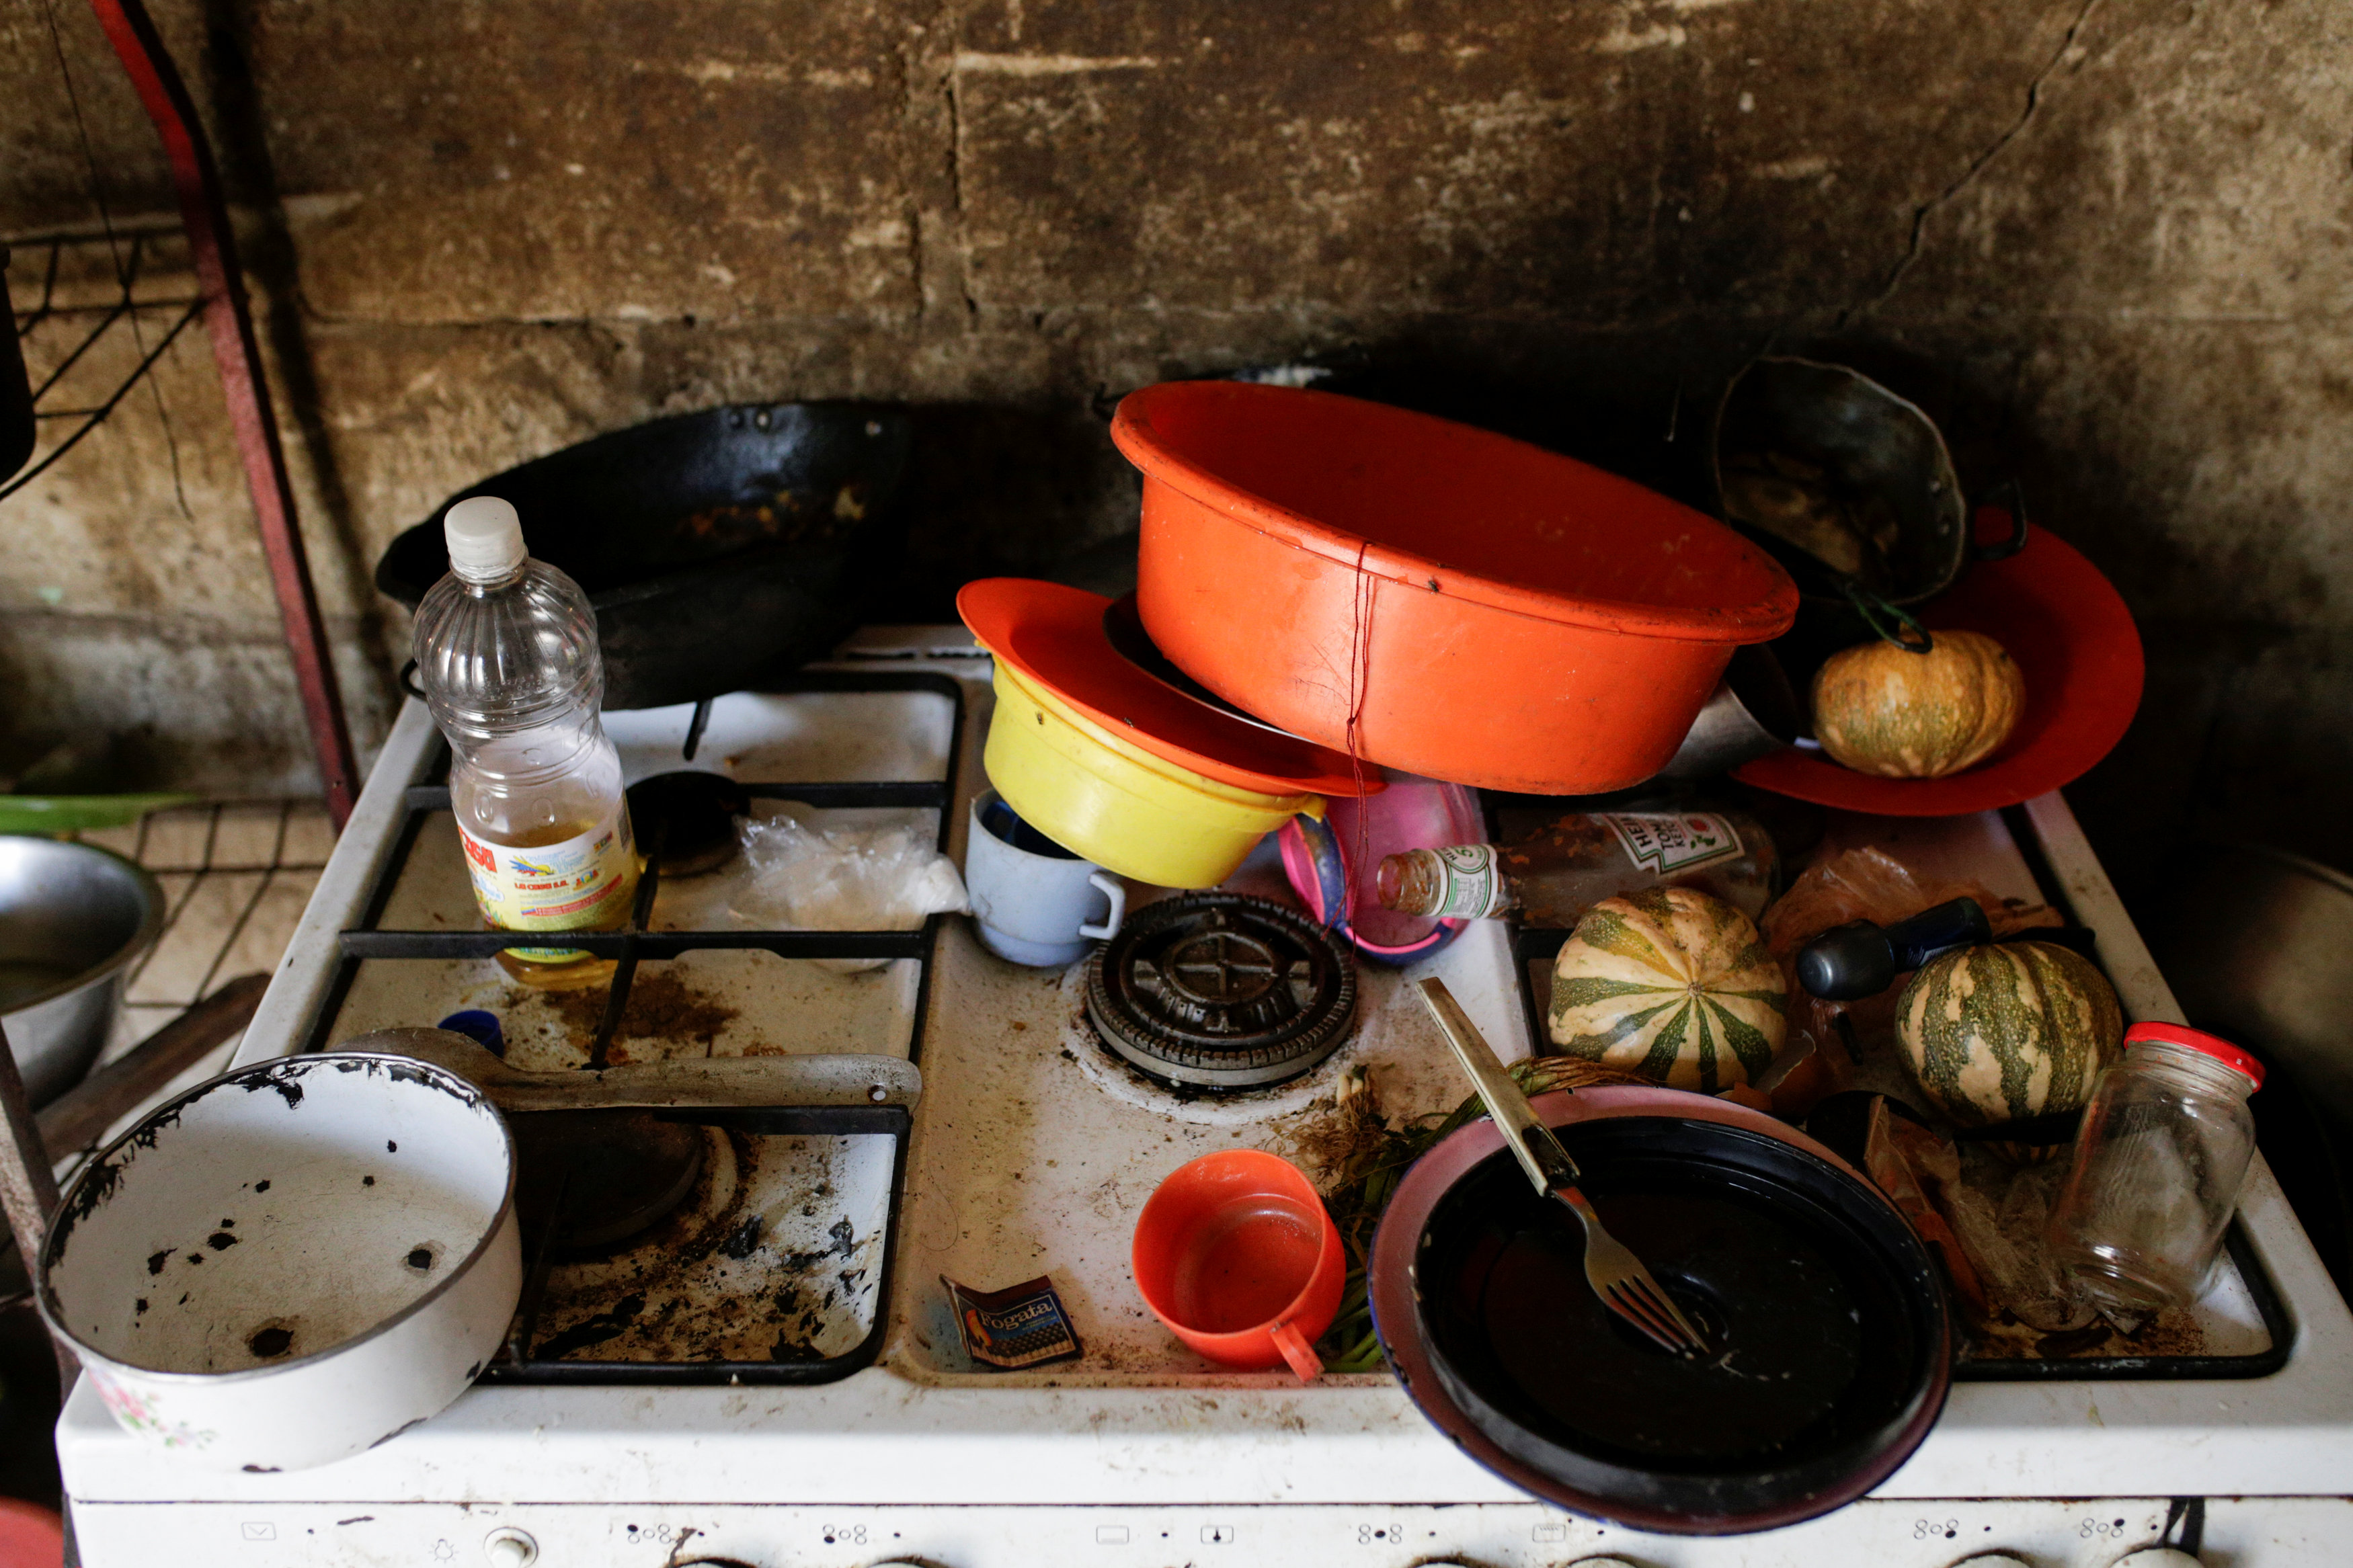 A view of the kitchen of Lideibis Bracho, who was diagnosed with chronic malnutrition, at her hovel in Paraguaipoa, Venezuela March 1, 2017. Picture taken March 1, 2017. REUTERS/Marco Bello